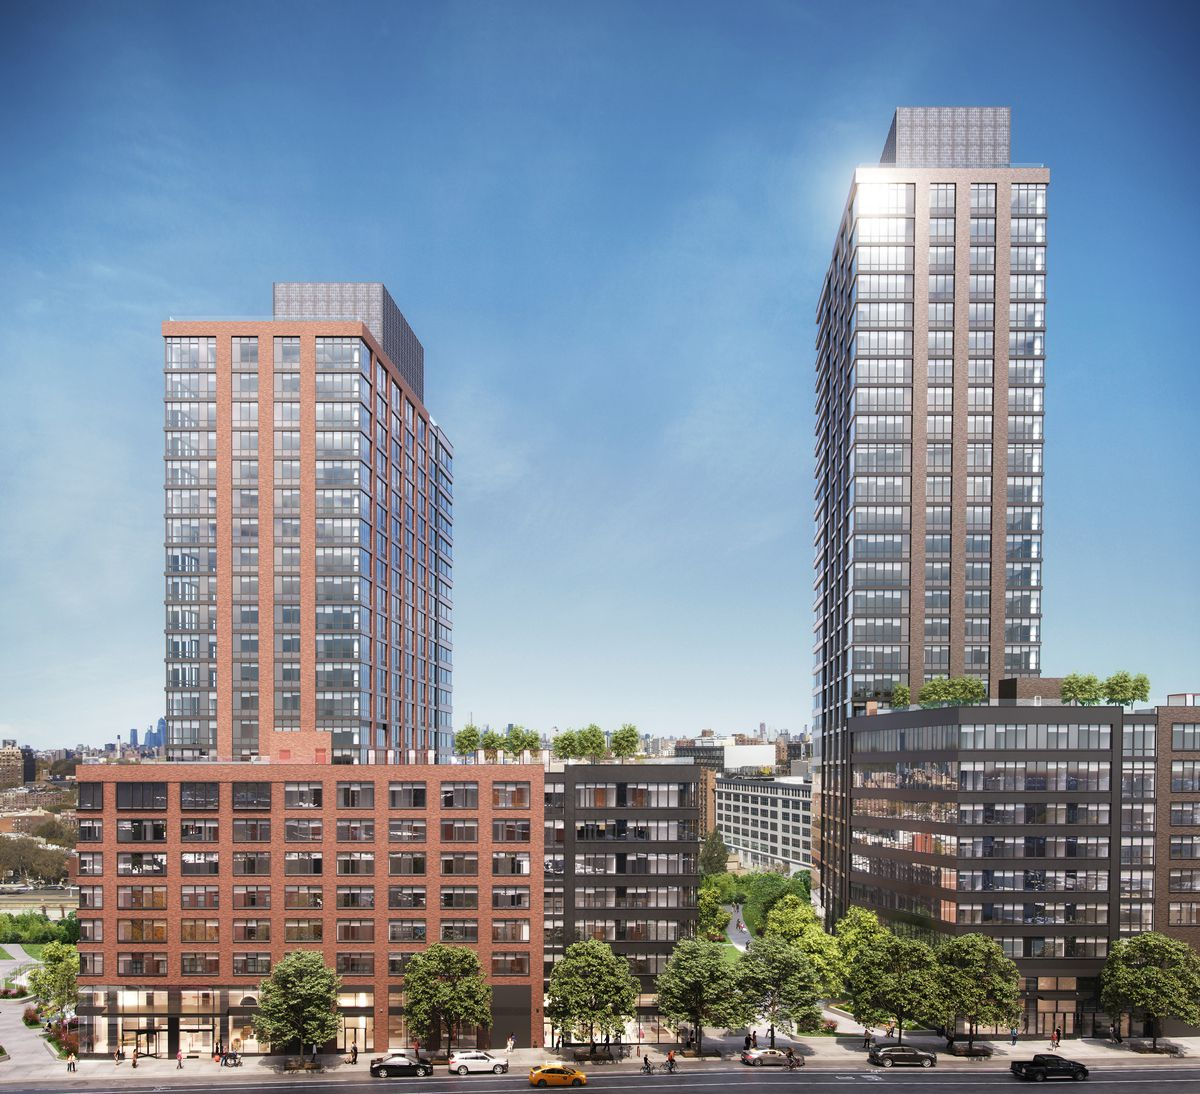 A rendering of two buildings. The one on the left is reddish brick with a tower rising from a blocky base, and the other is brown with a tower rising from a blocky base.